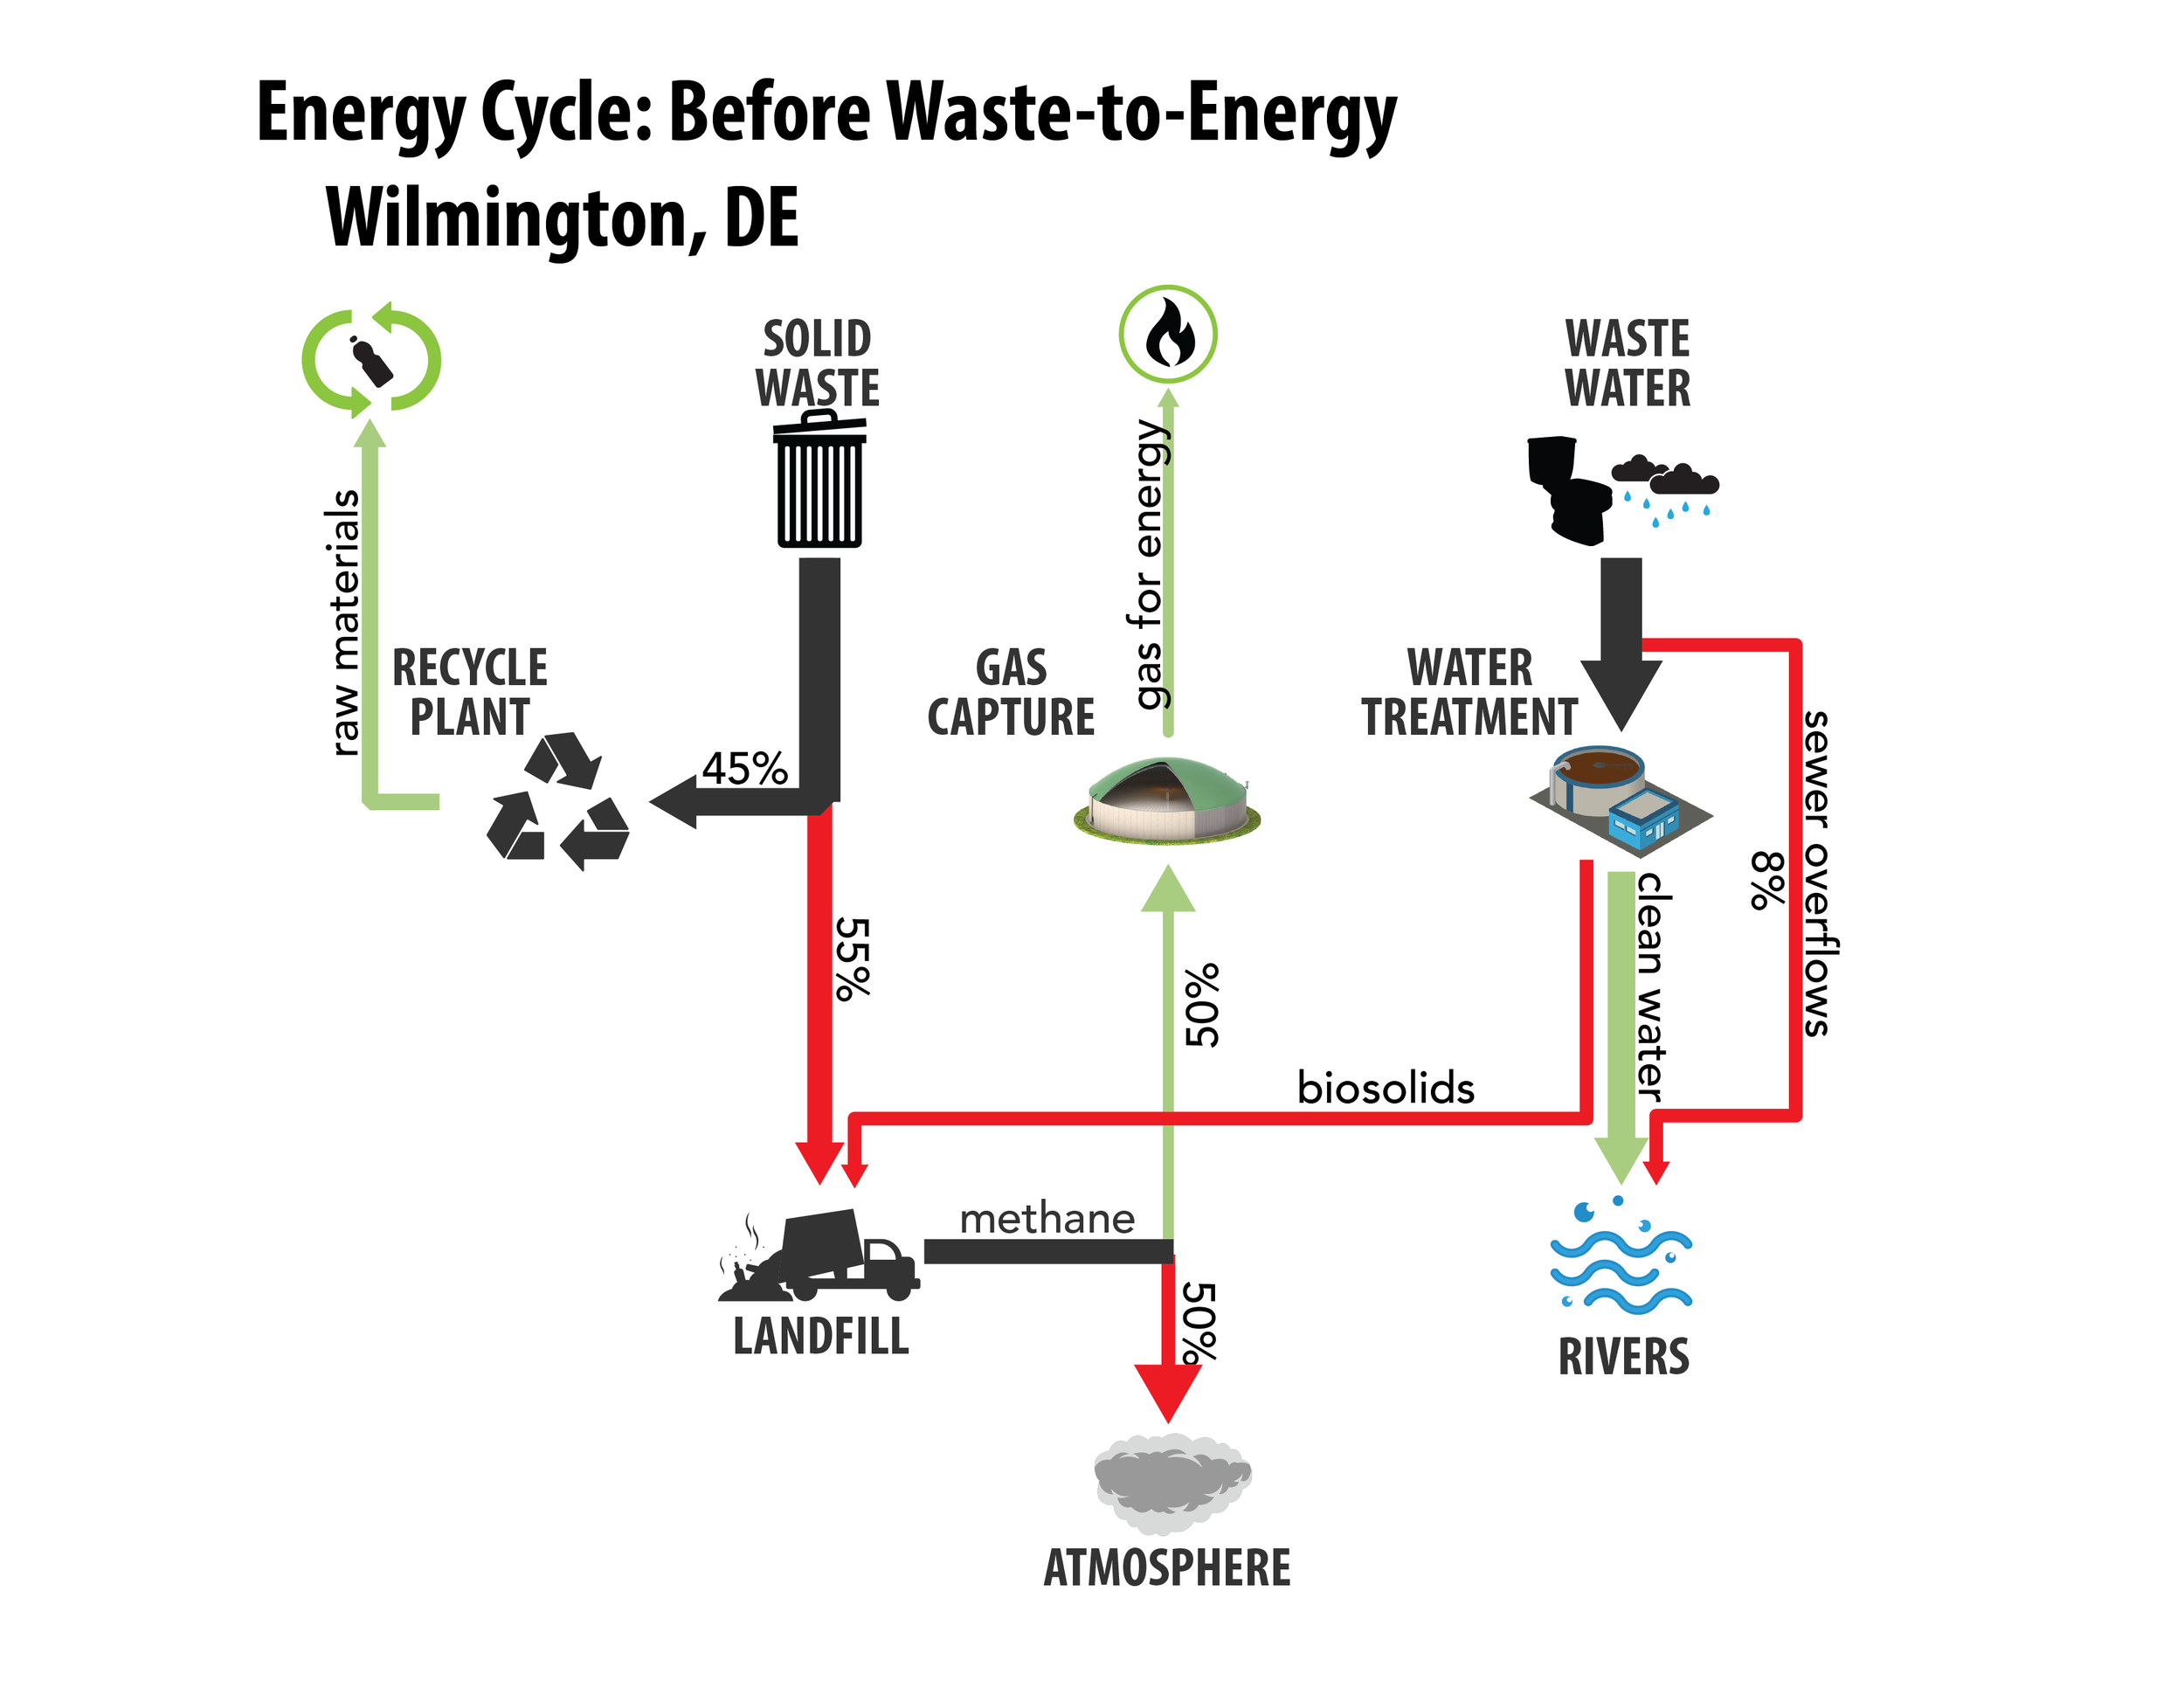 Wilmington Energy Cycle - Before